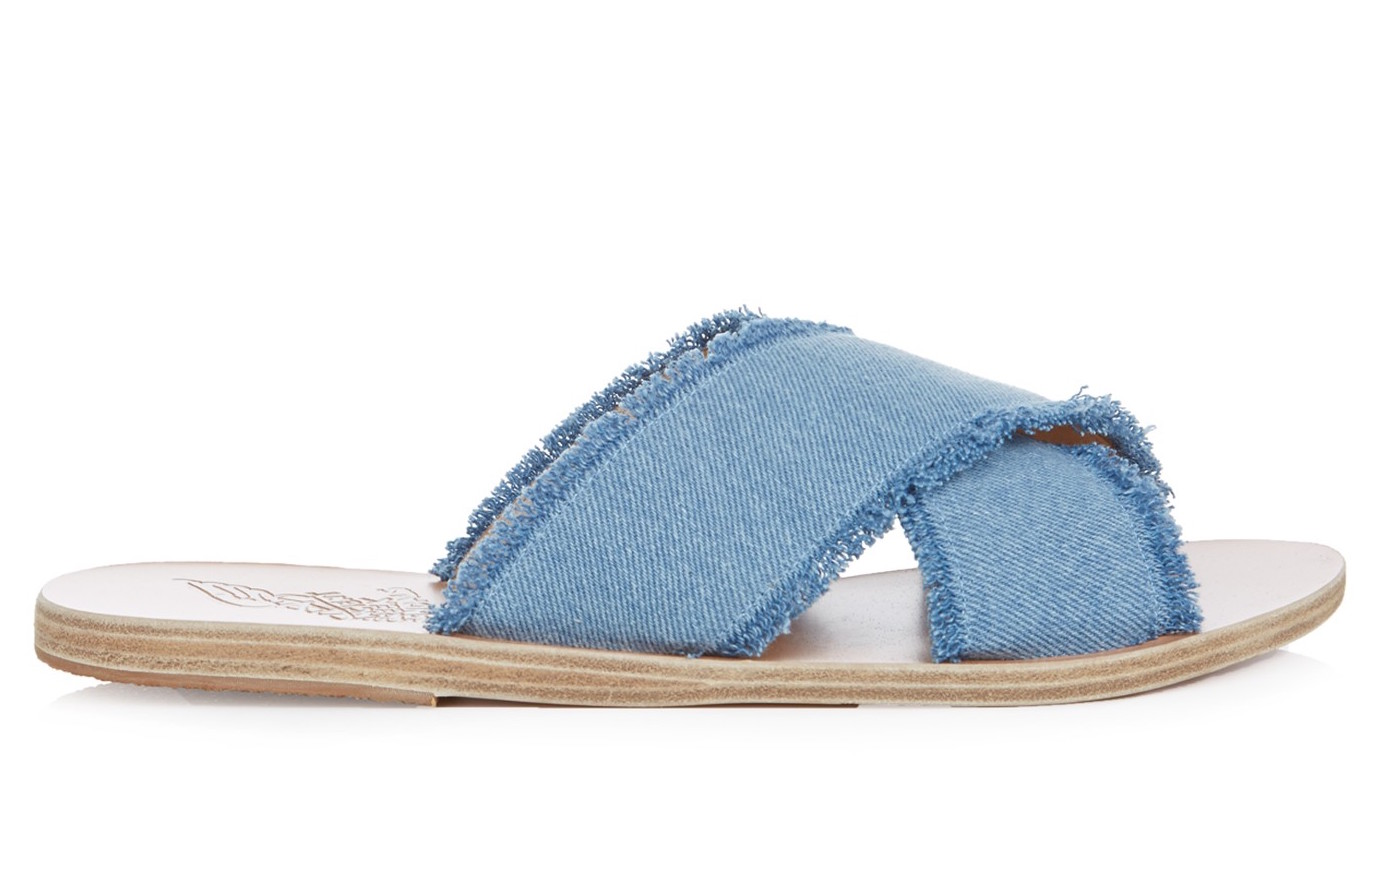 'THAIS' DENIM ANCIENT GREEK SANDALS